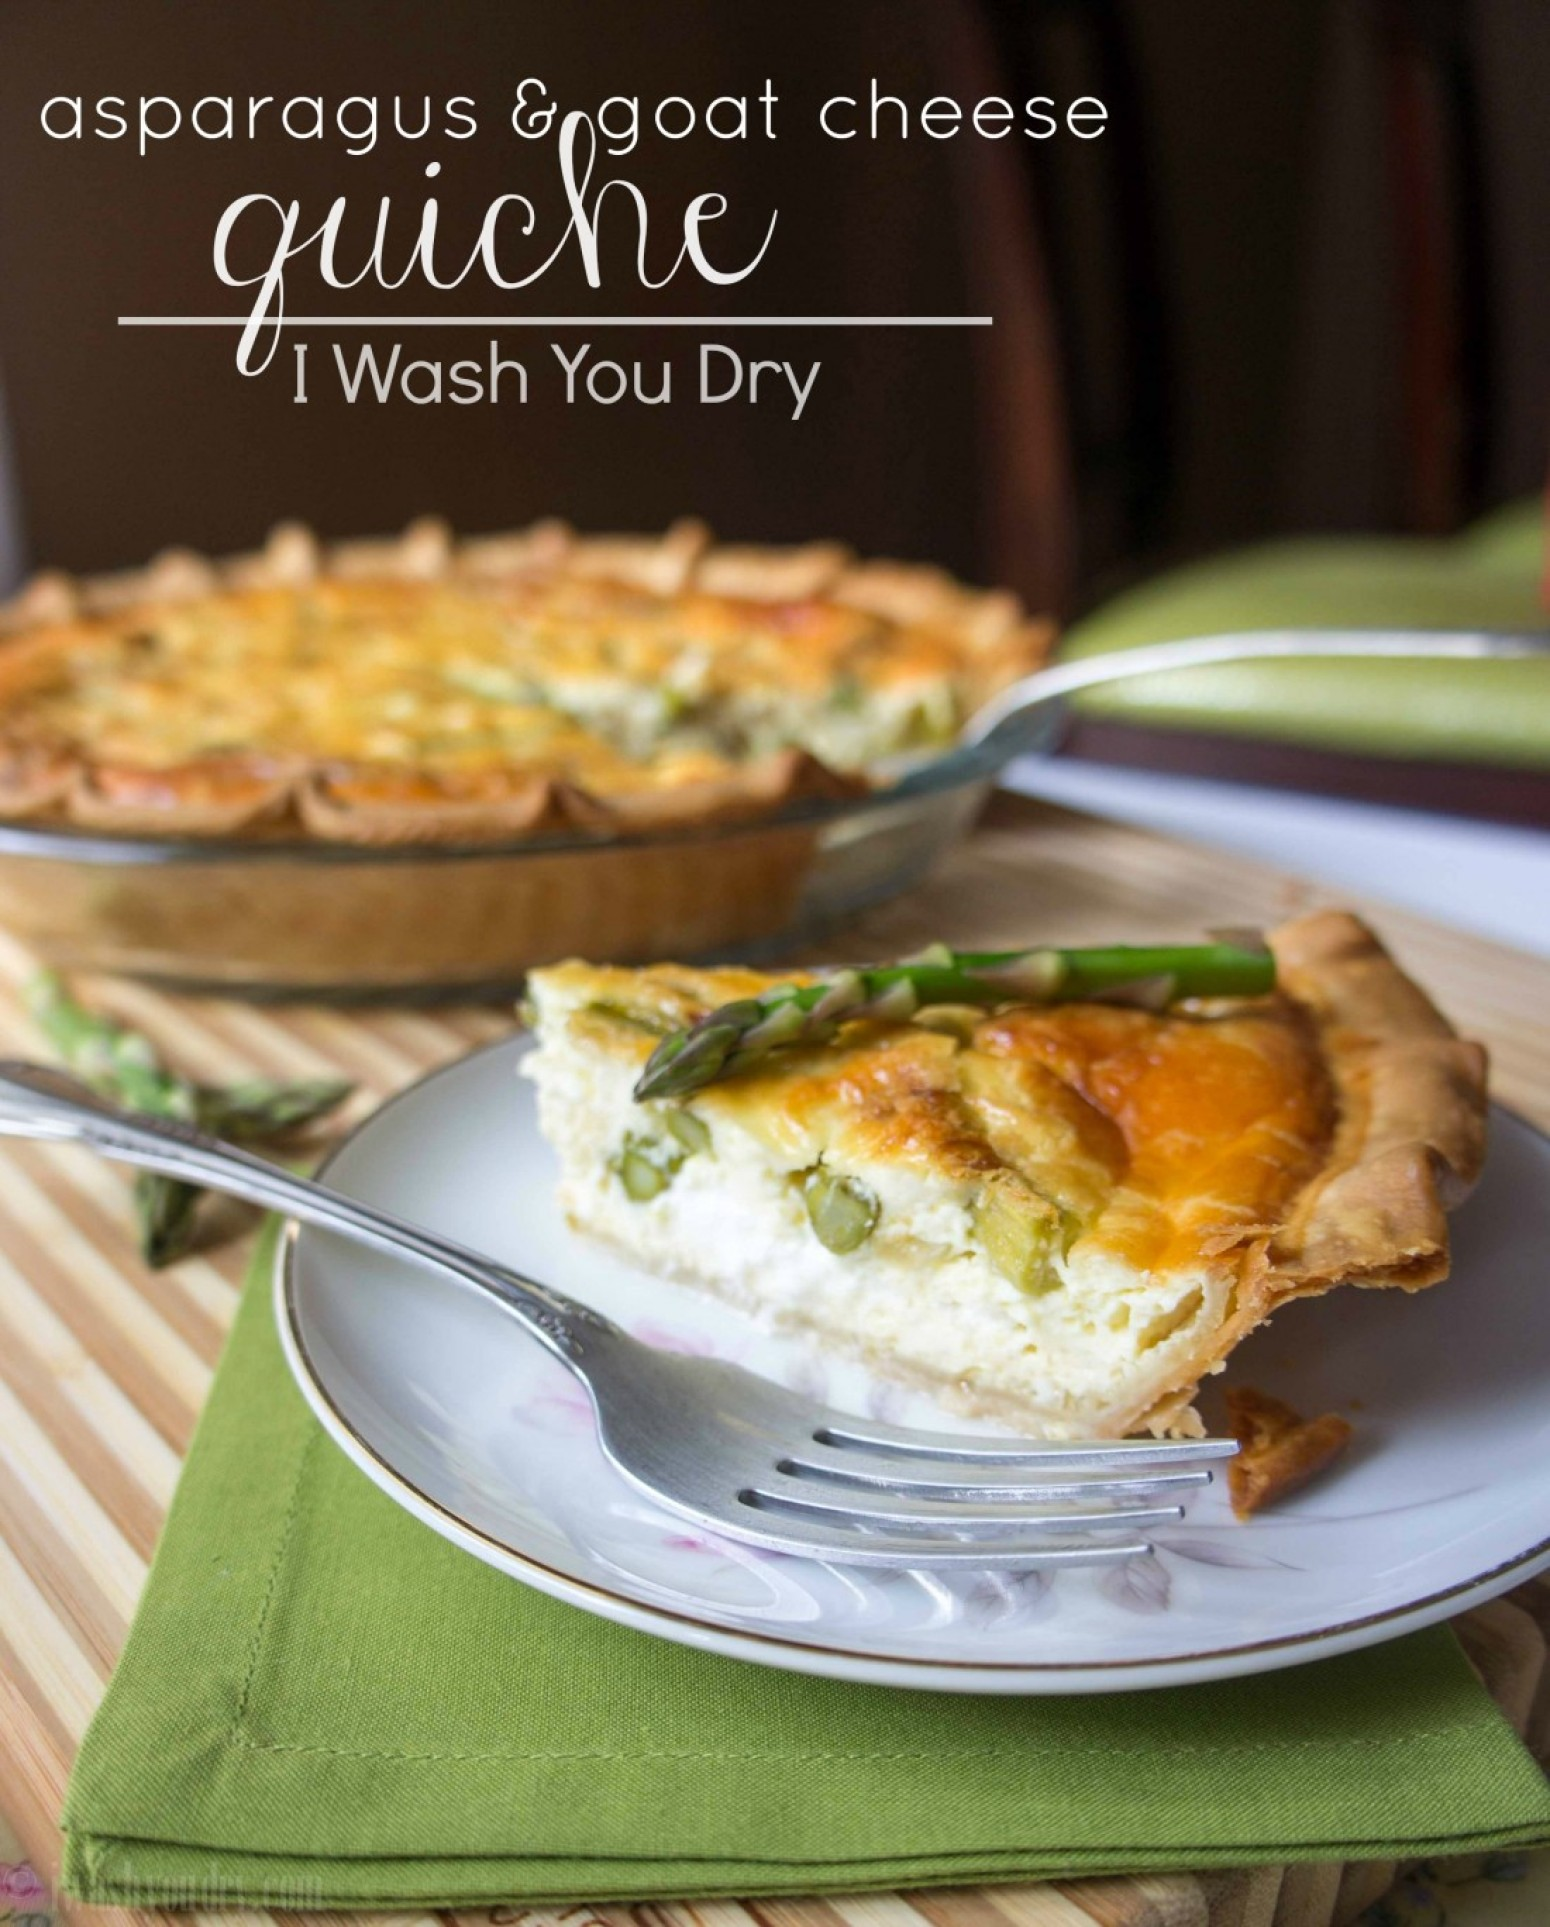 Asparagus and Goat Cheese Quiche Recipe | Just A Pinch Recipes